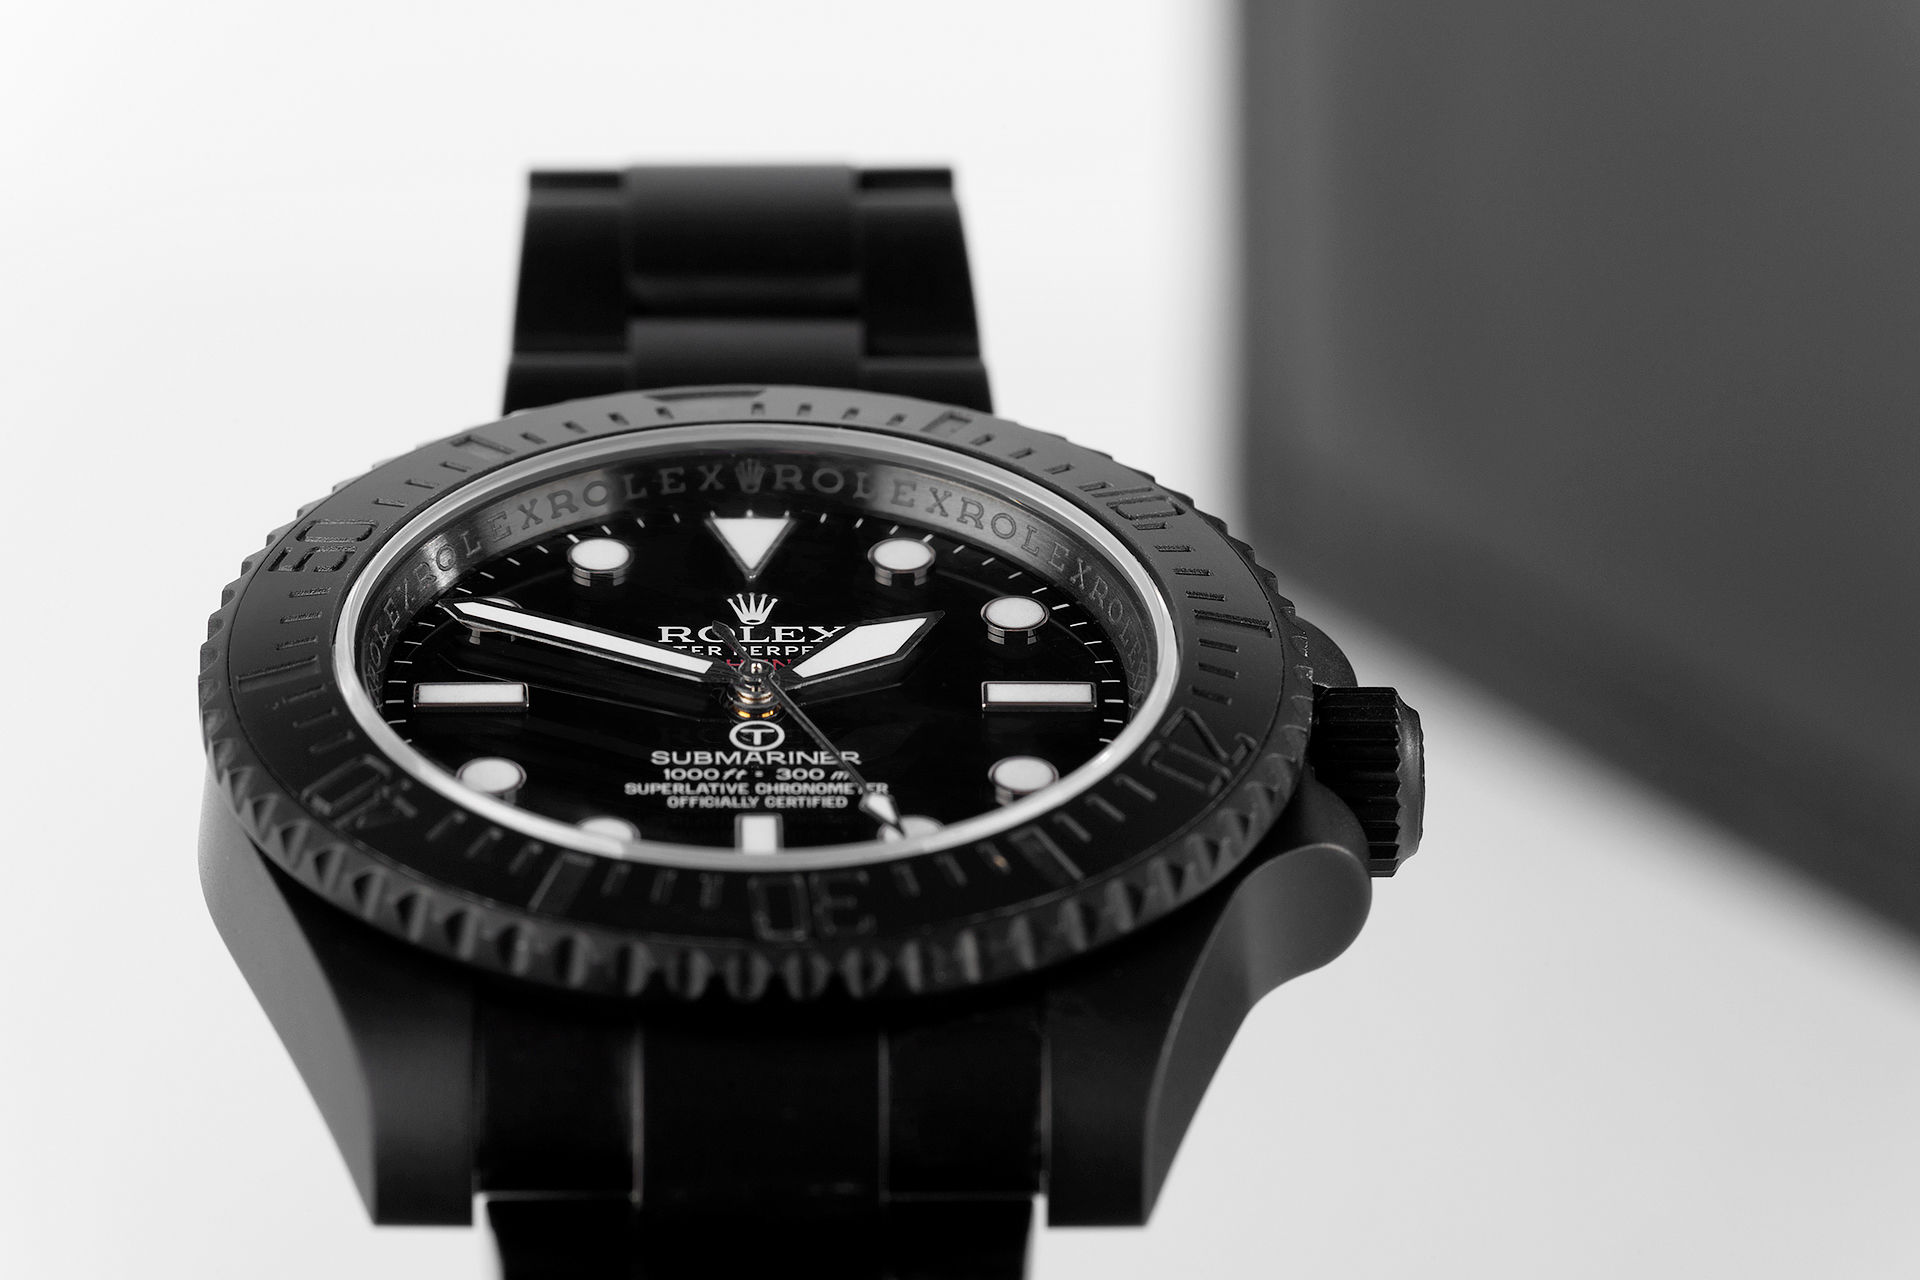 ref 114060 | 'Military' 1 of 100 Limited Edition | Pro Hunter Submariner